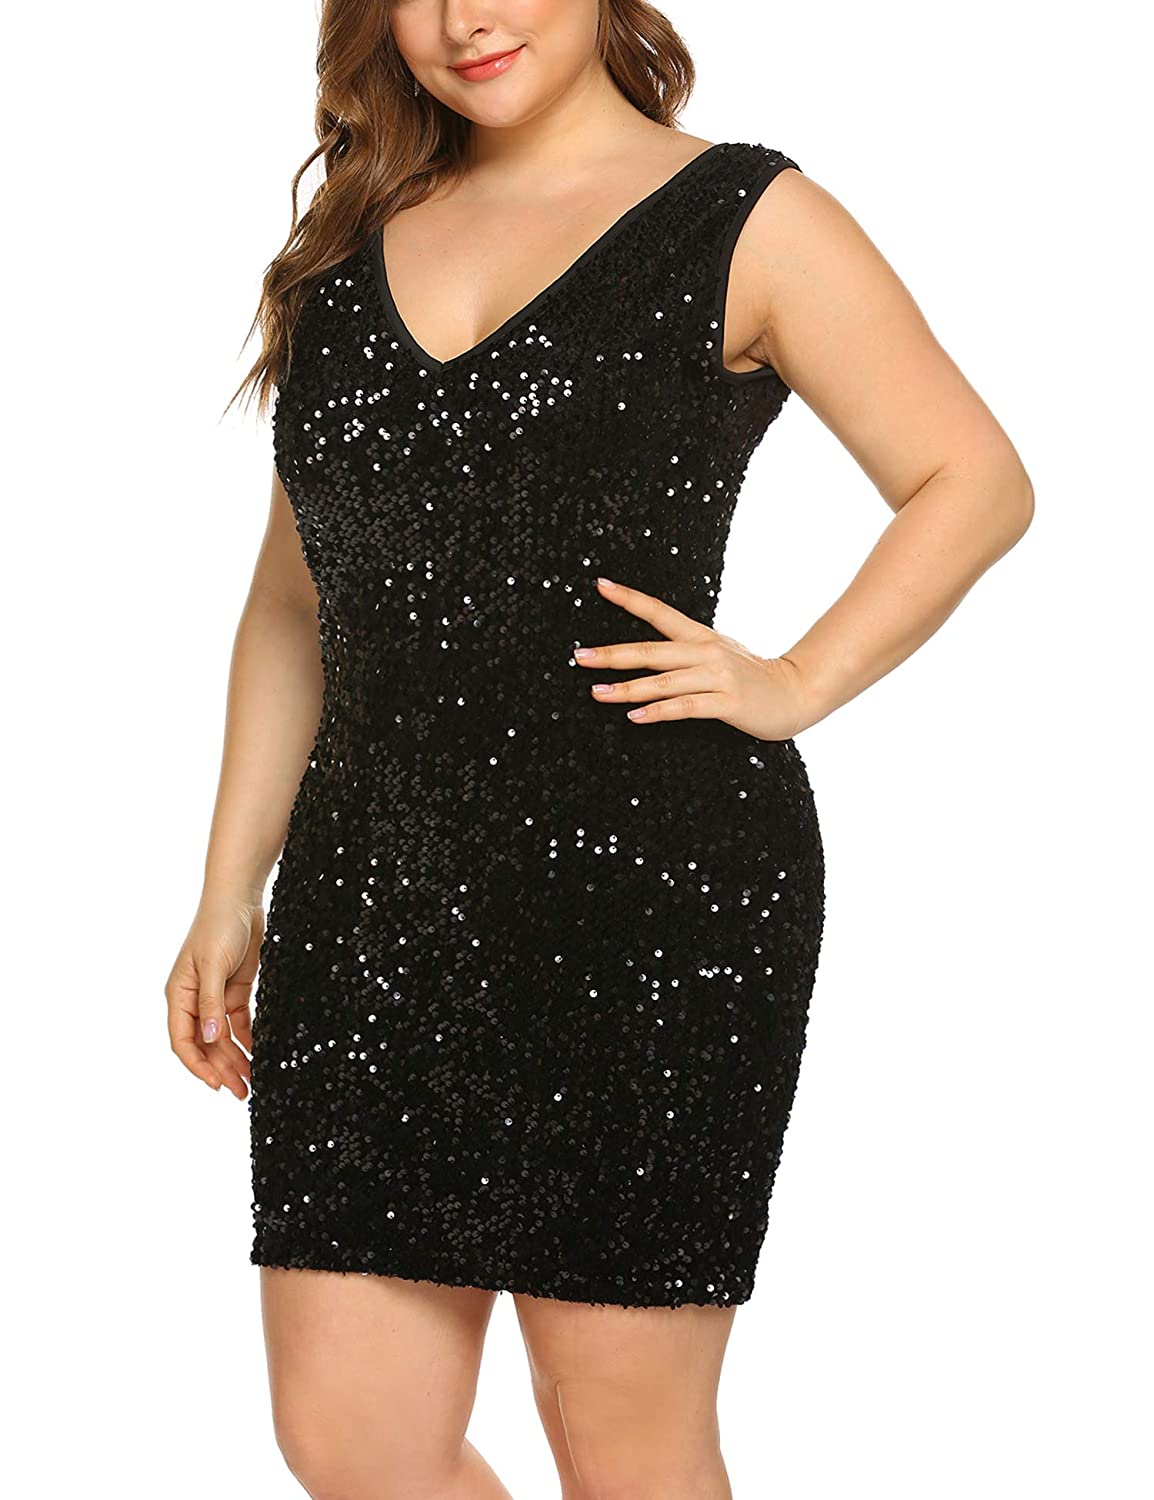 60s 70s Plus Size Dresses, Clothing, Costumes INVOLAND Womens Sequin Dress Plus Size Sexy V Neck Party Cocktail Bodycon Formal Glitter Sleeveless Mini Dresses $40.99 AT vintagedancer.com